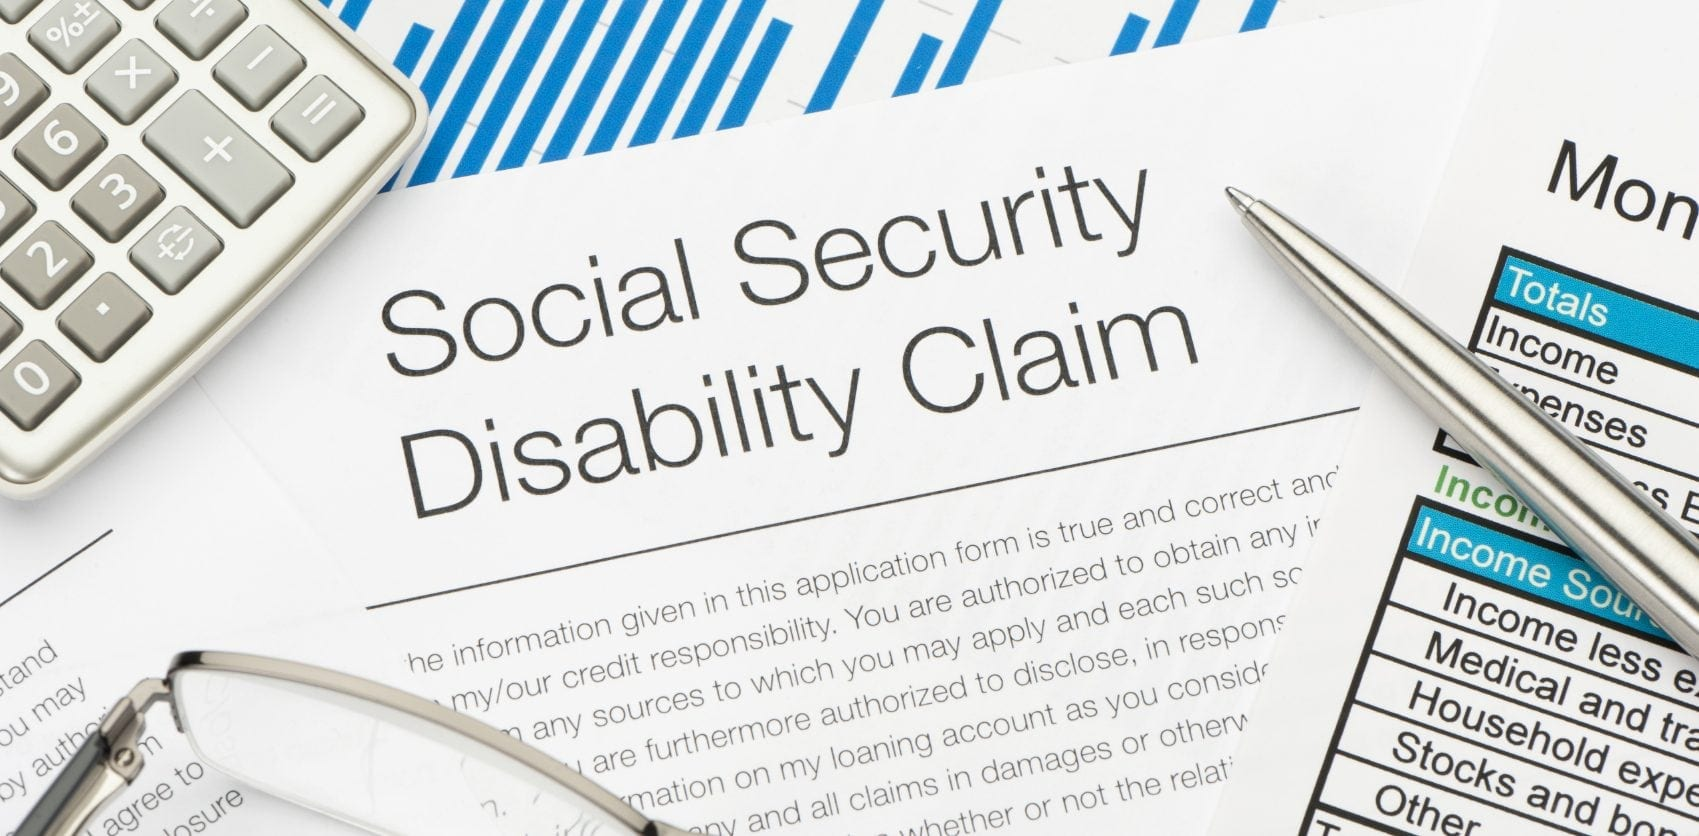 Social Security Disability Claim Stock Photo